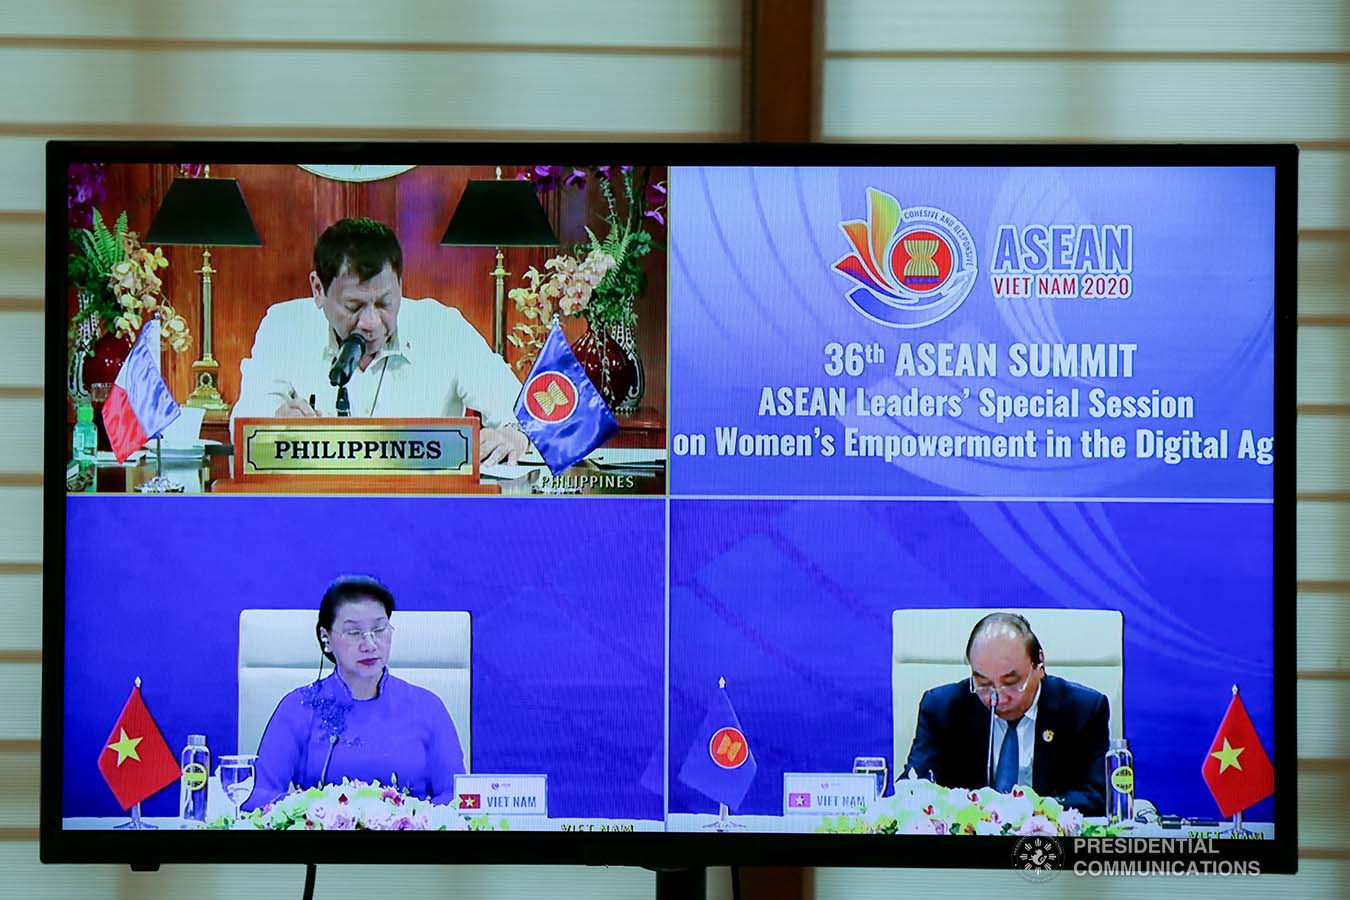 President Rodrigo Roa Duterte gives his intervention as he joins other leaders from the Association of Southeast Asian Nations (ASEAN) member countries during the 36th ASEAN Summit video conference at the Malago Clubhouse in Malacañang on June 26, 2020. SIMEON CELI JR./PRESIDENTIAL PHOTOS